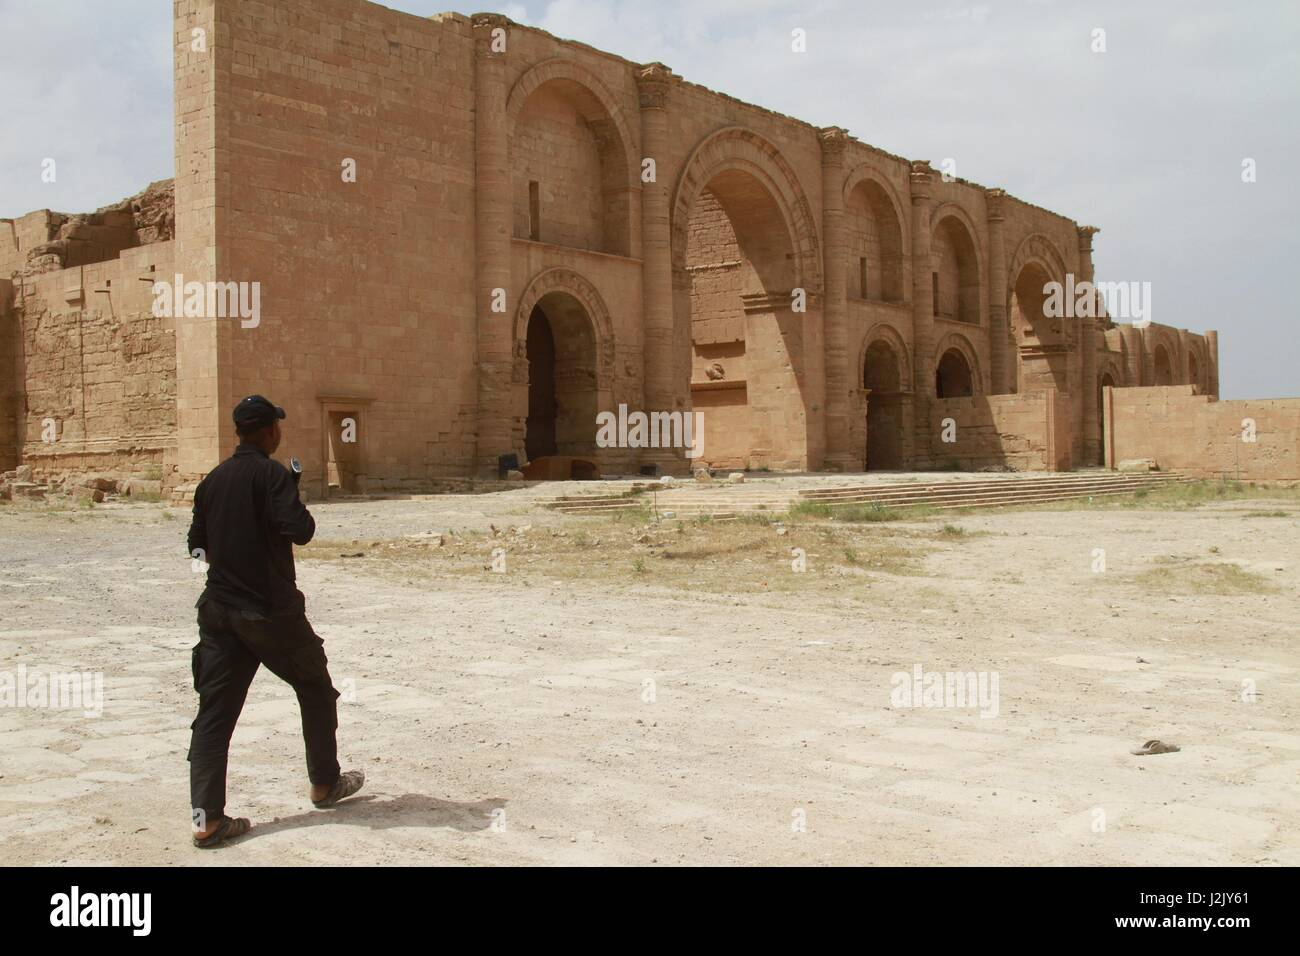 Baghdad, Iraq. 28th Apr, 2017. An Iraqi paramilitary soldier patrols at the ancient Hatra city in the south of Nineveh - Stock Image